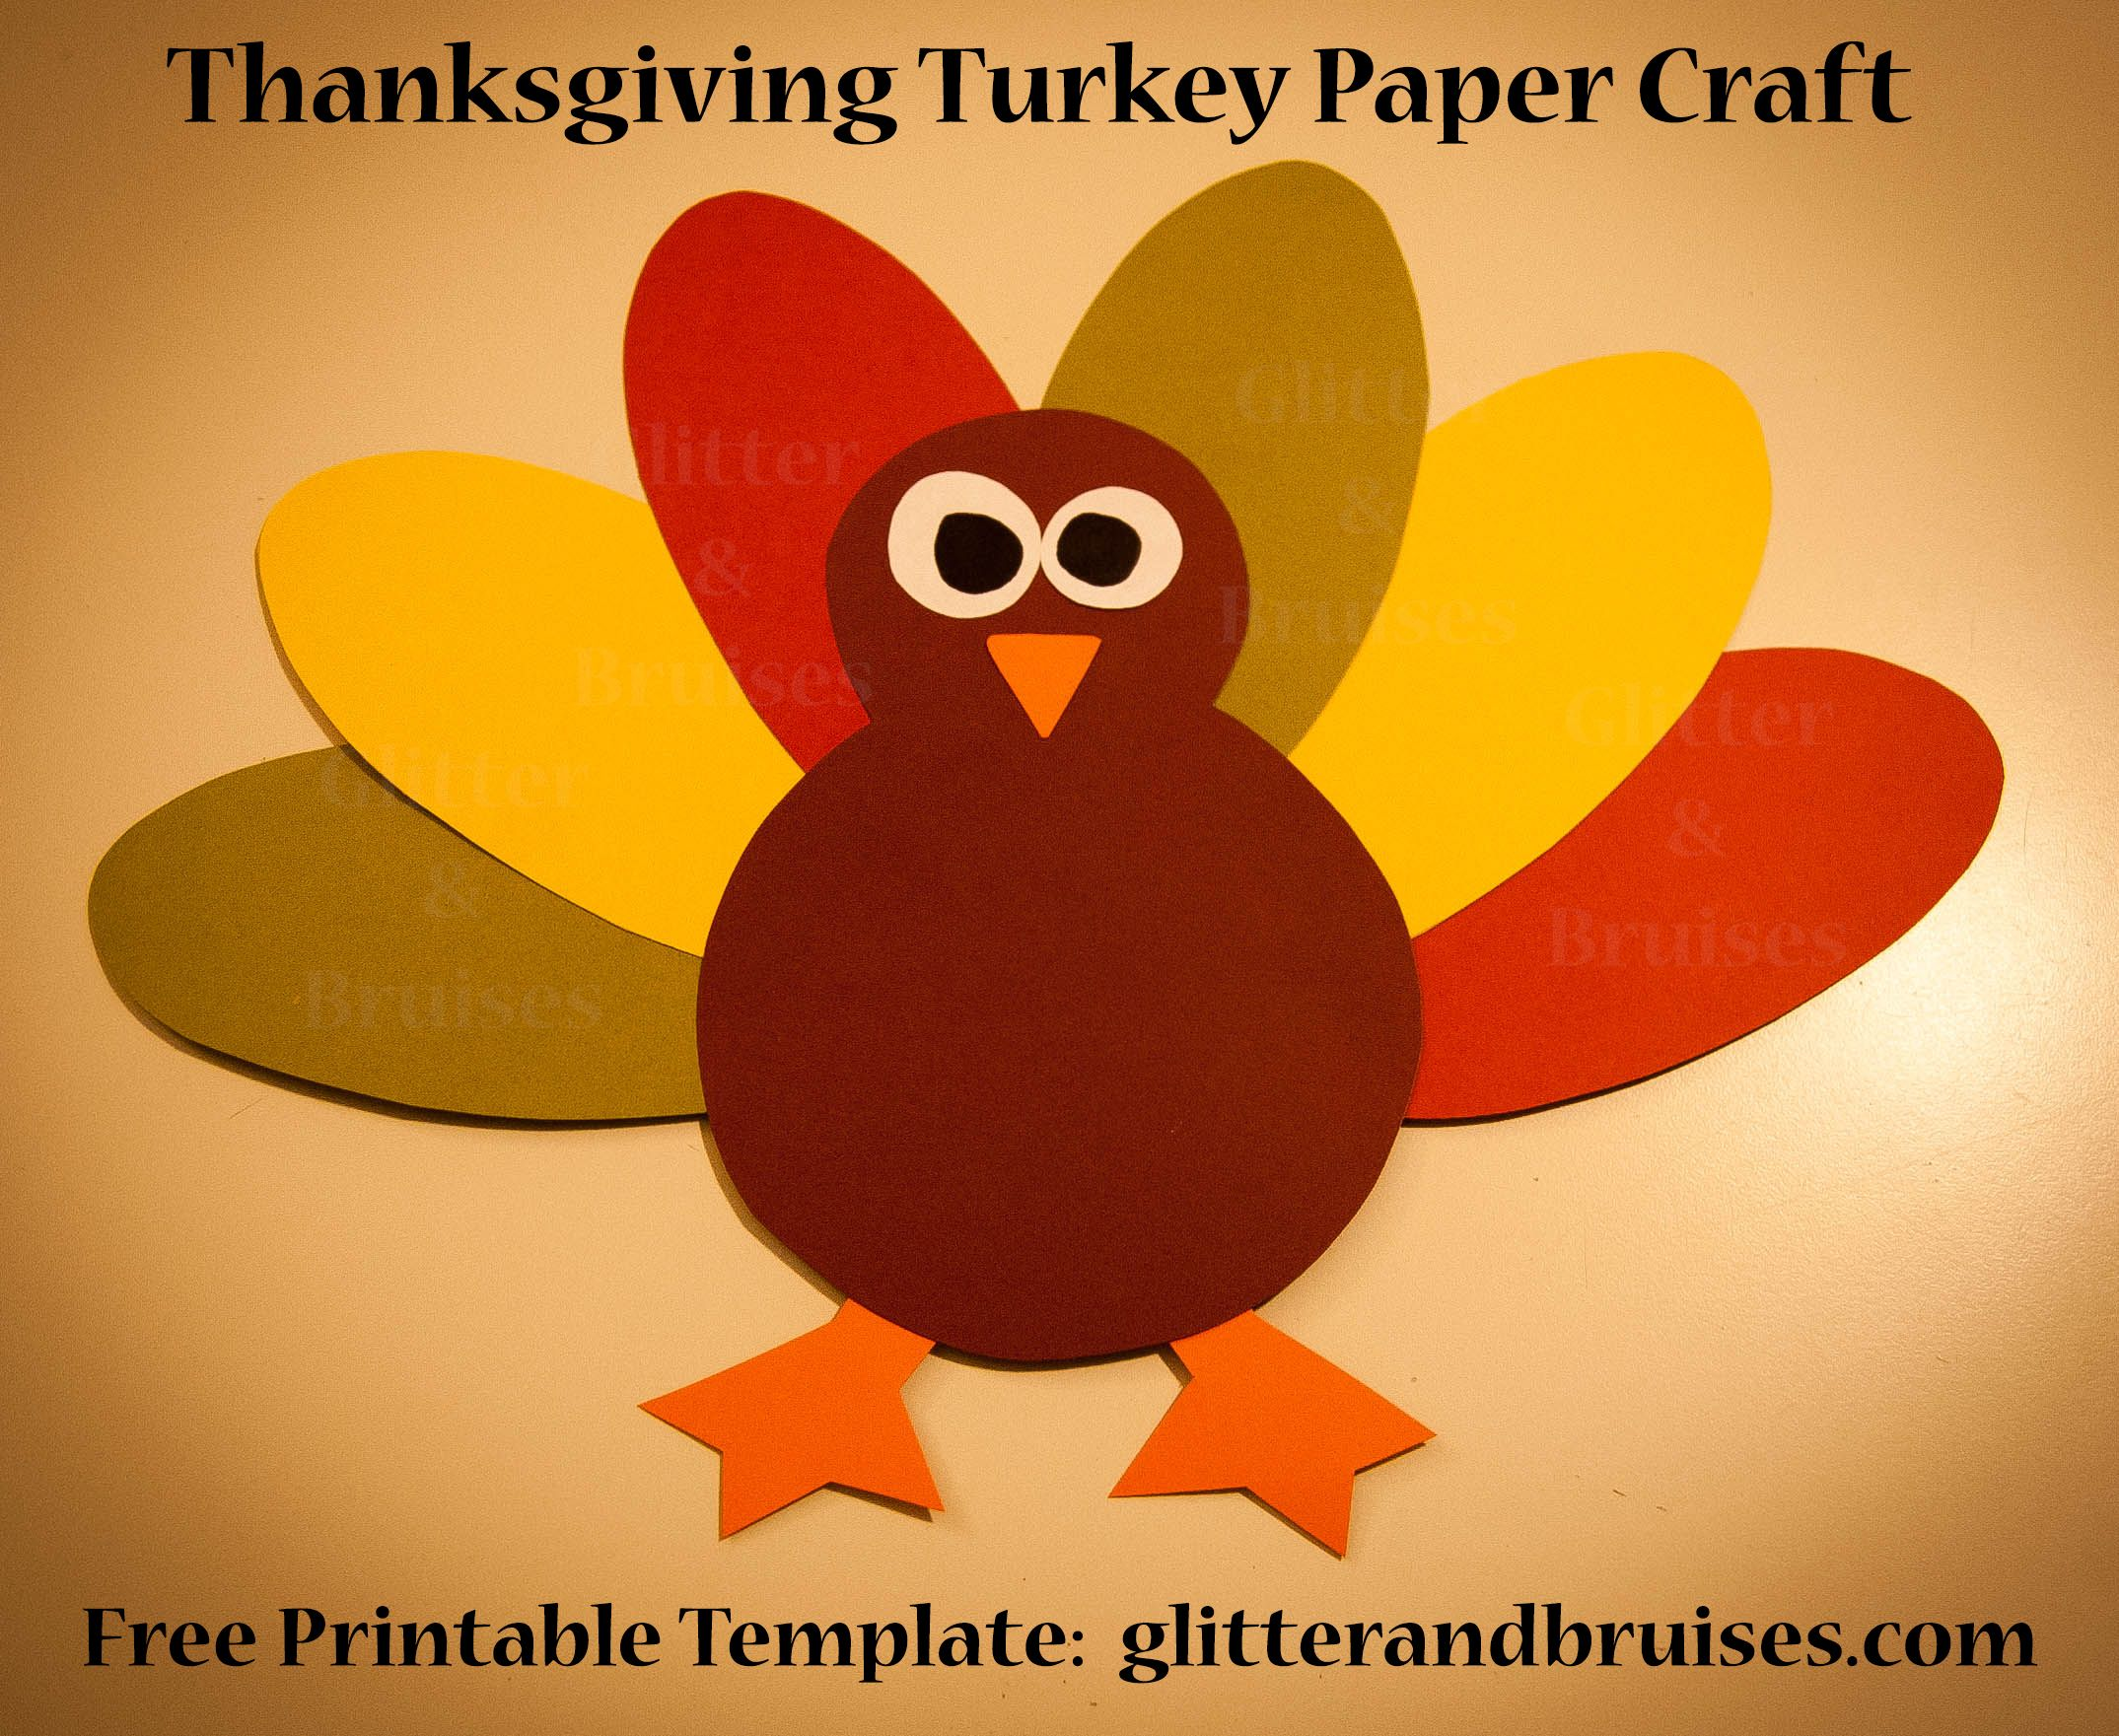 Thanksgiving Turkey Paper Craft For Kids Download And